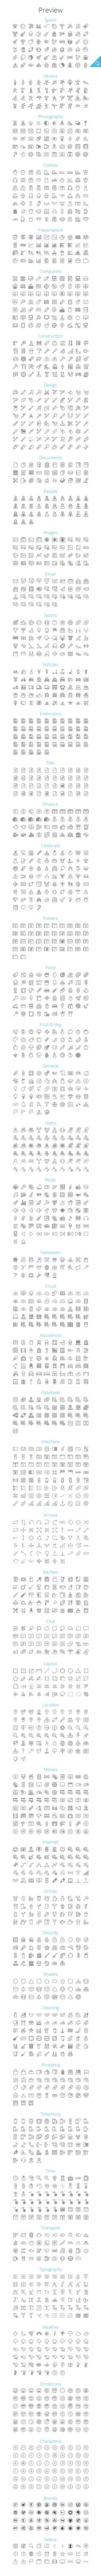 5000 iOS icons - PixelLove • Available here → https://creativemarket.com/PixelLove/764677-5000-iOS-icons-PixelLove?u=pxcr